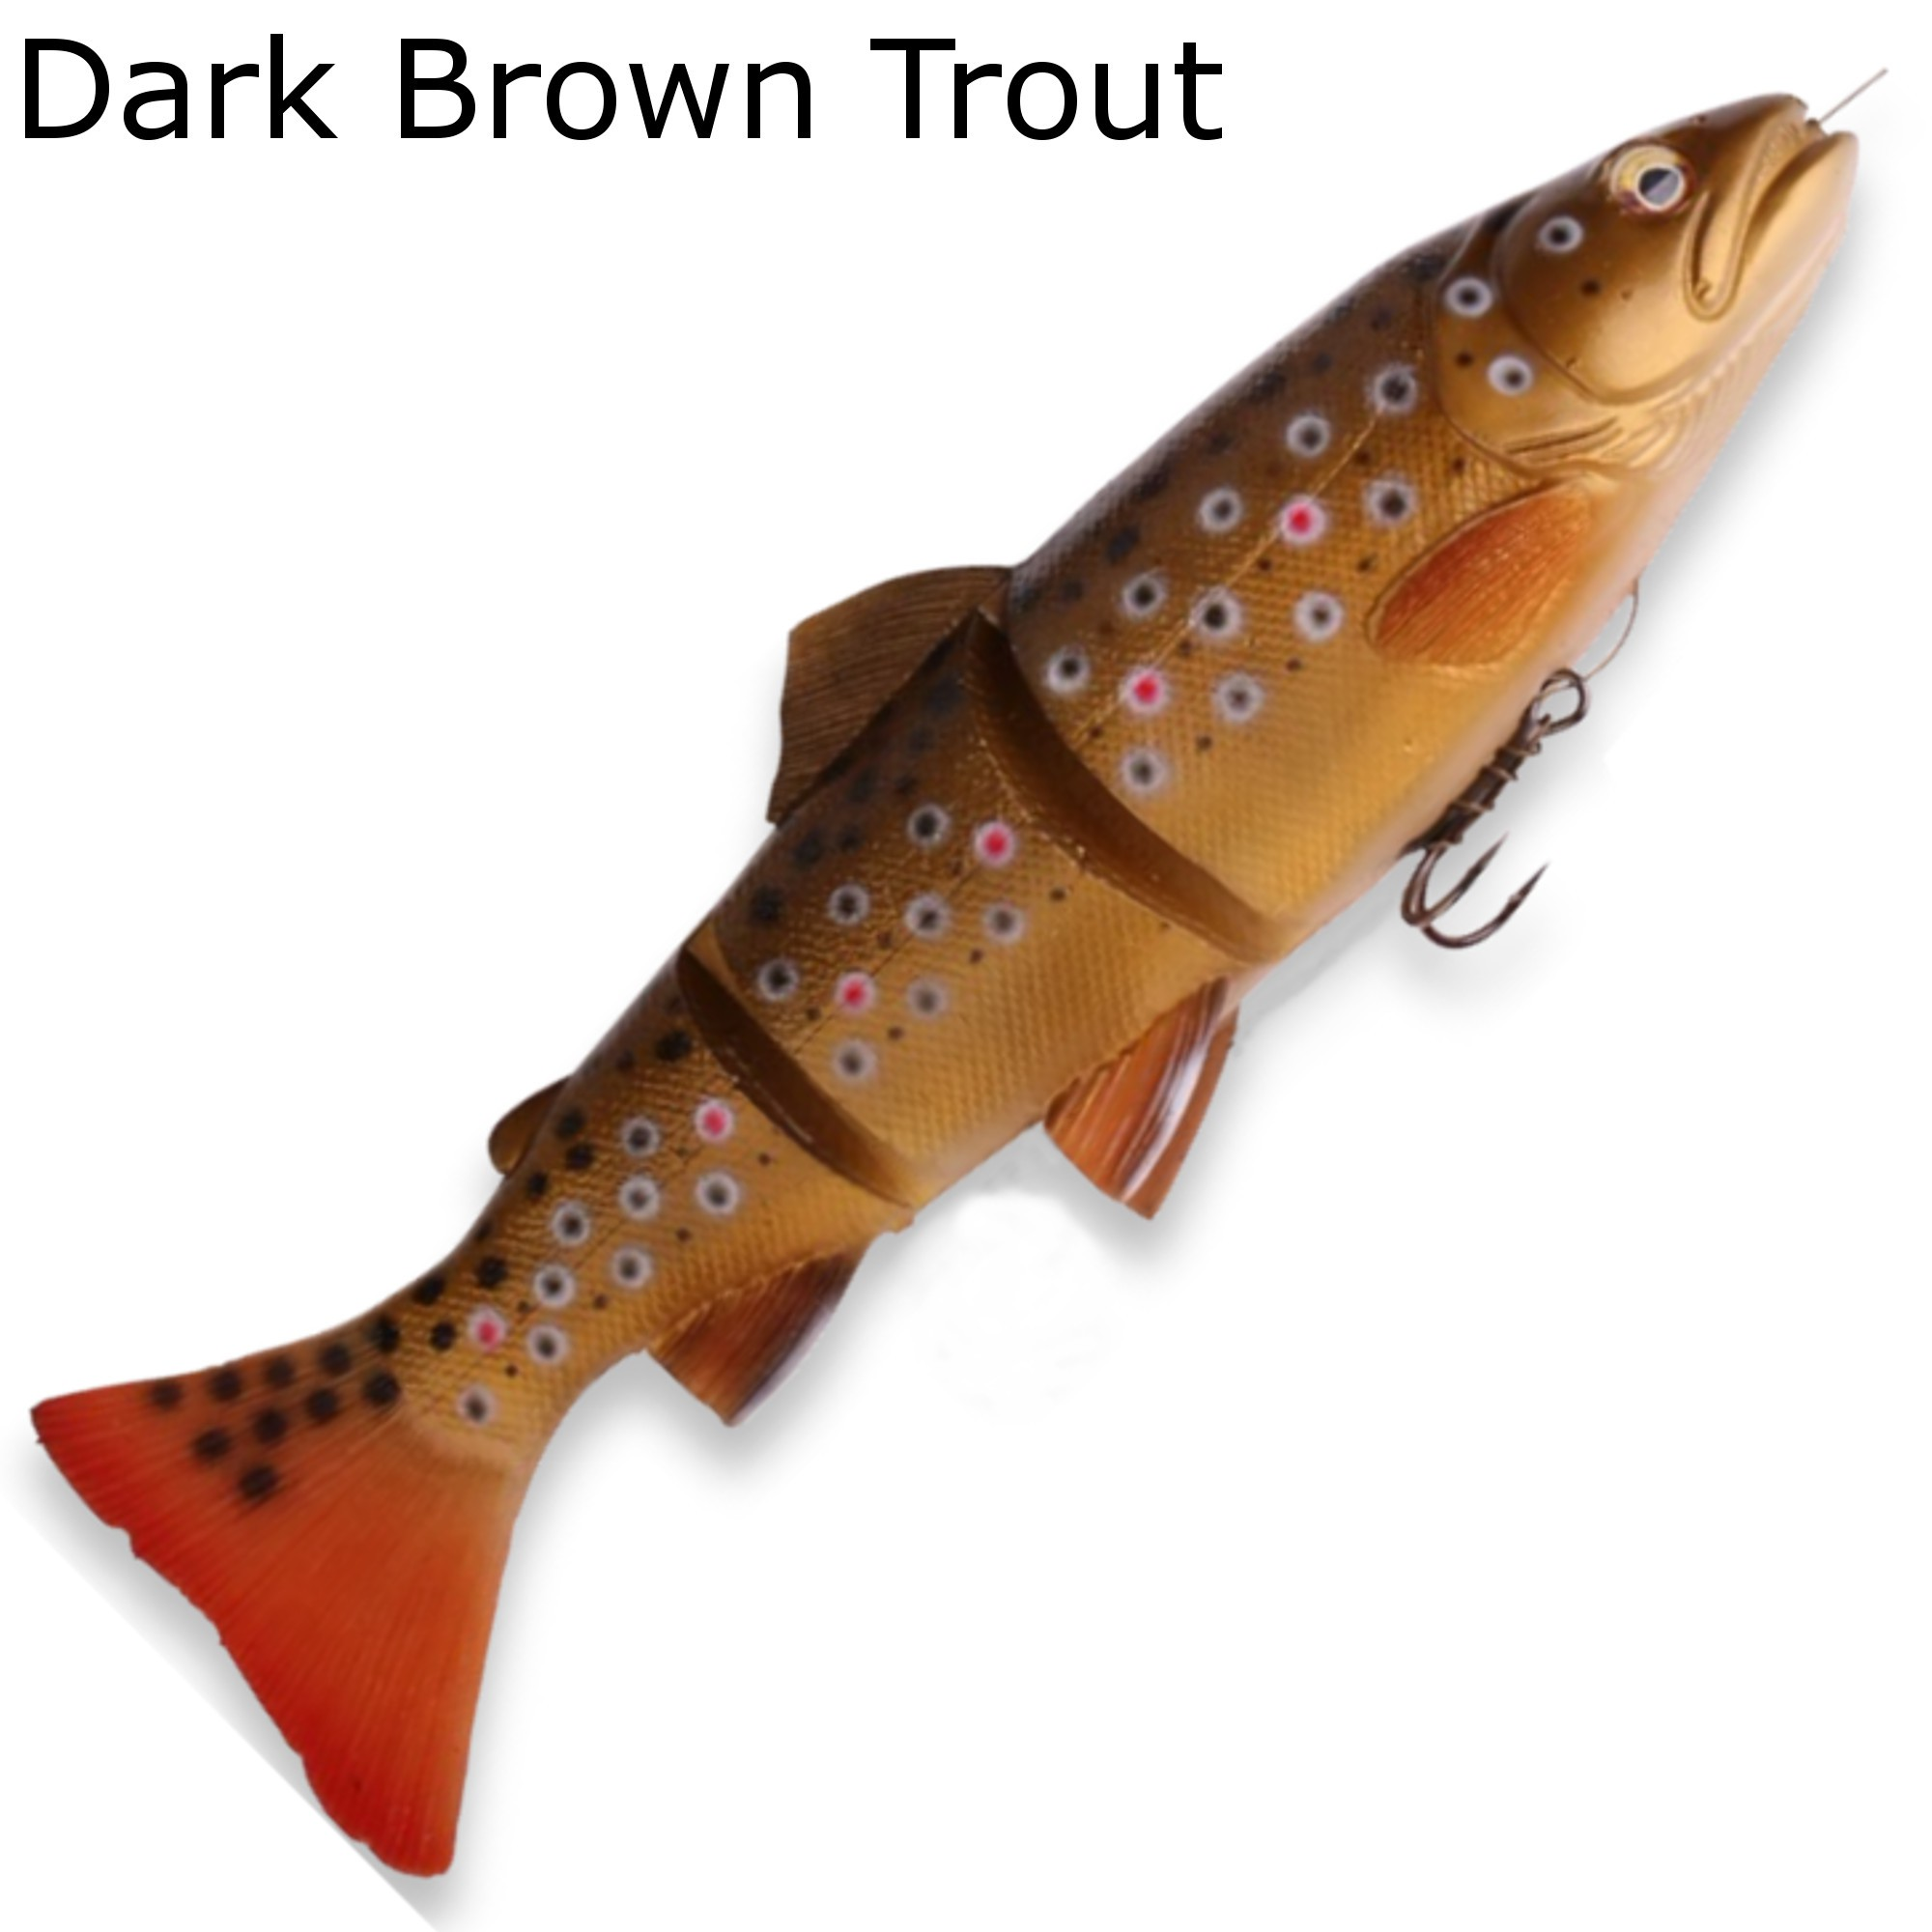 trout chat Brook trouts are found in many part of north america they are easy to identify as they have an elongated tapering body and are greenish black in color.